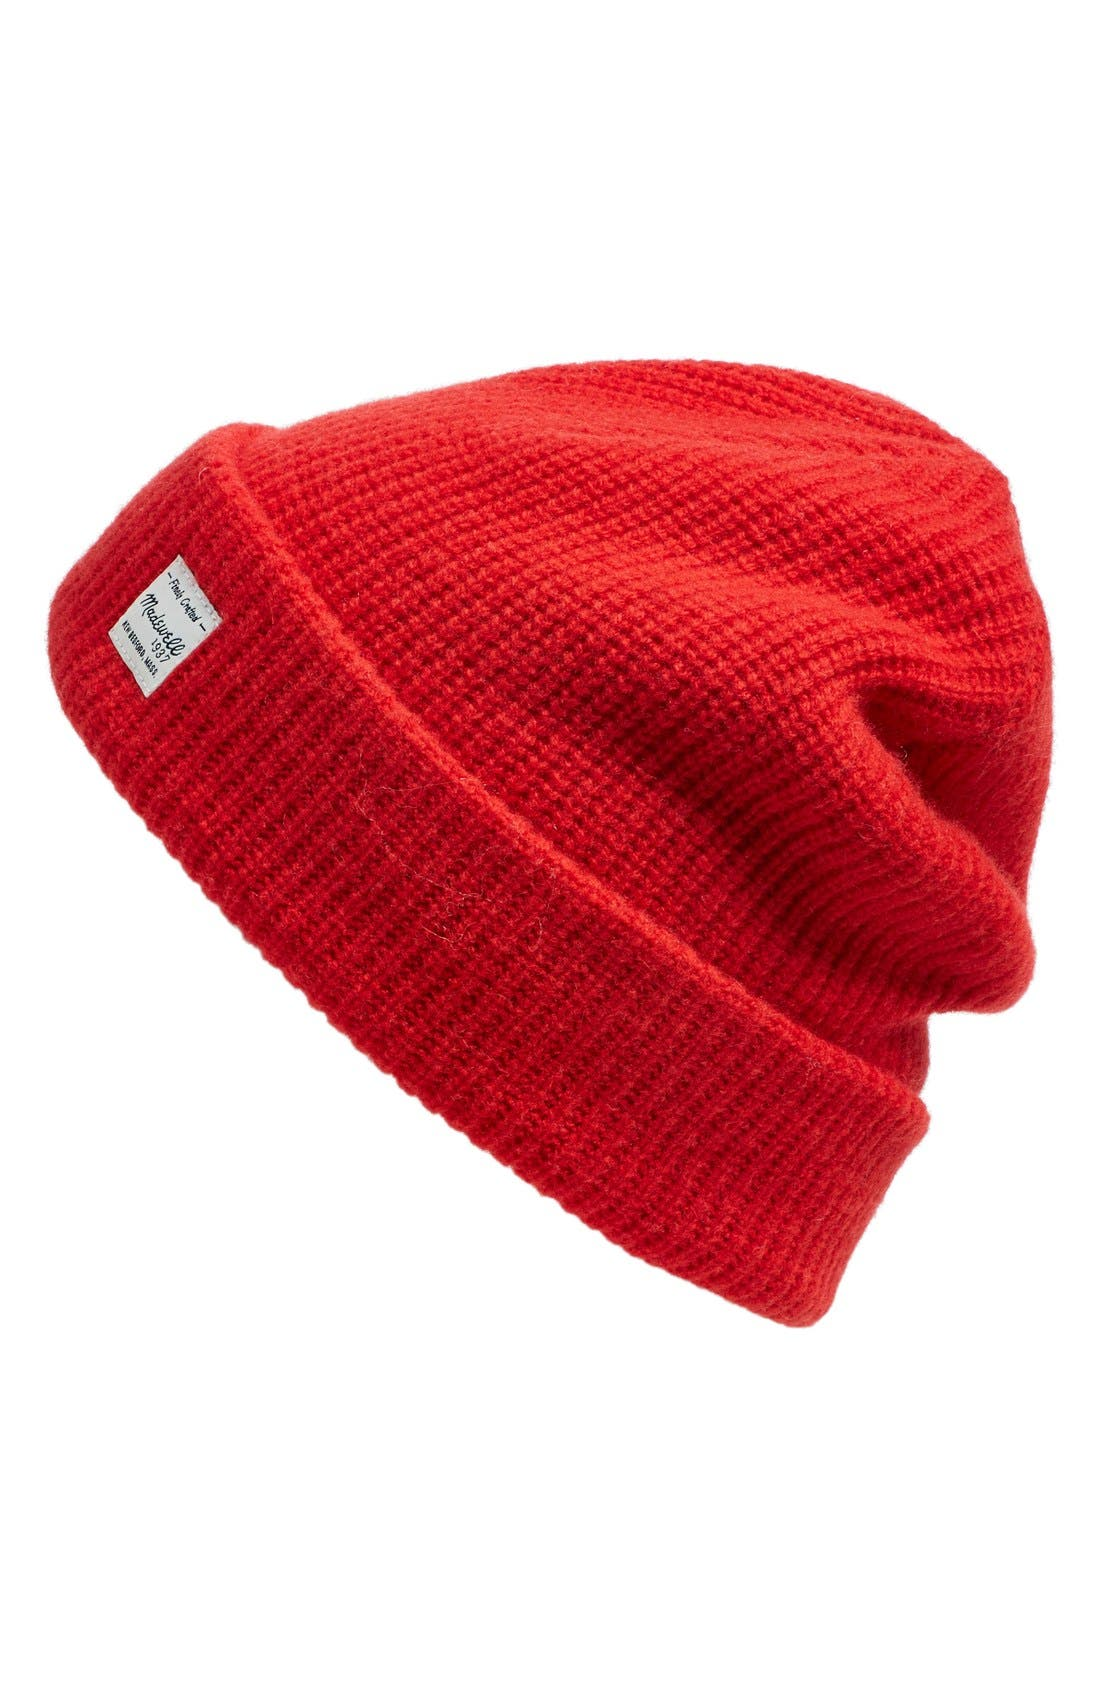 Main Image - Madewell Slouchy Knit Beanie